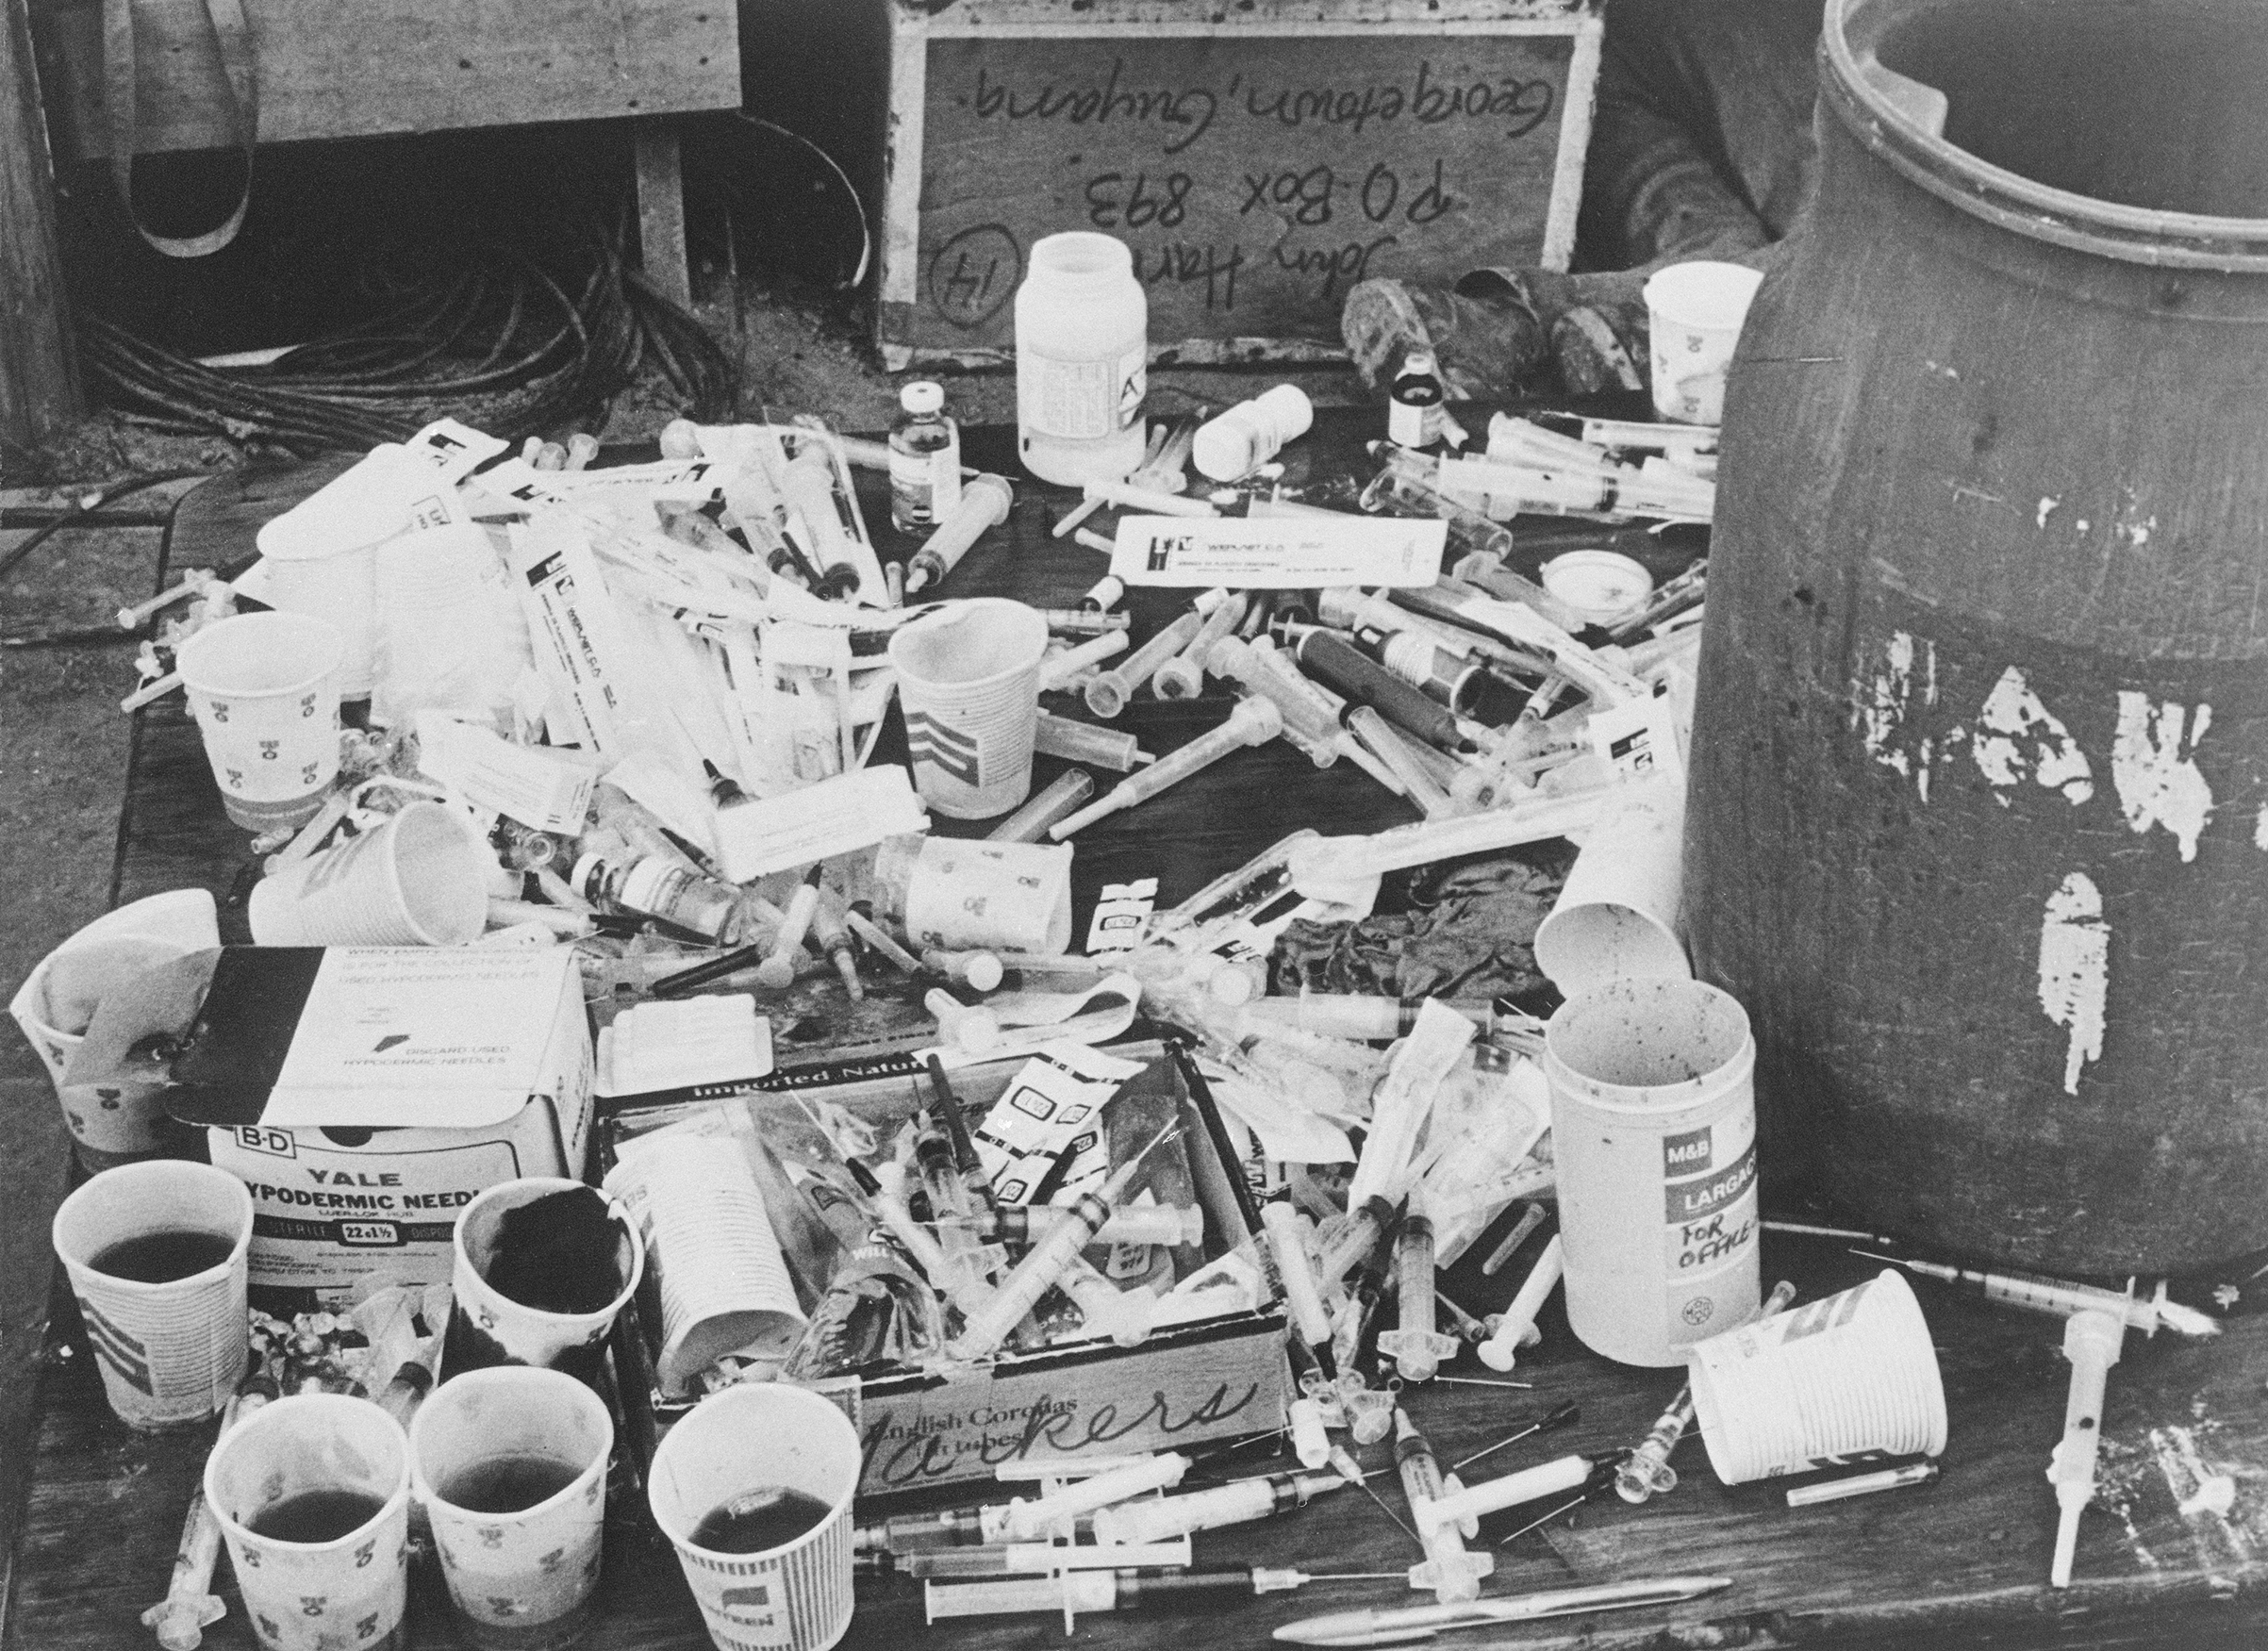 A pile of paper cups with cyanide-laced fruit punch, and a pile of hypodermic syringes, found at Jonestown by Guyanese officials.